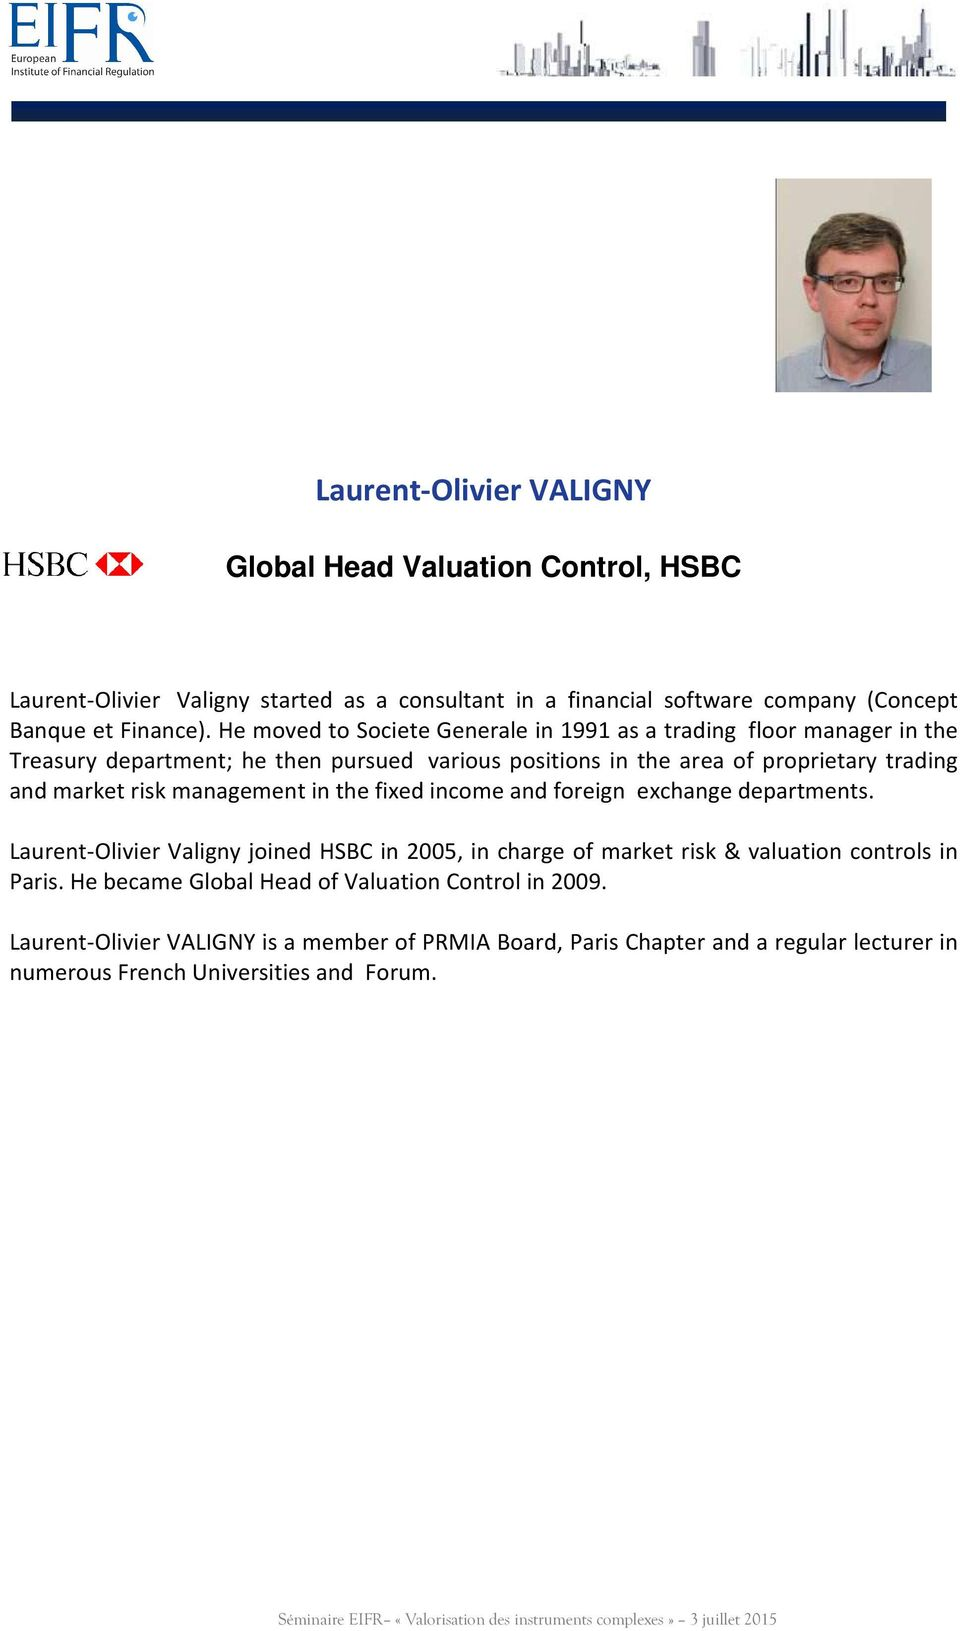 risk management in the fixed income and foreign exchange departments. Laurent-Olivier Valigny joined HSBC in 2005, in charge of market risk & valuation controls in Paris.